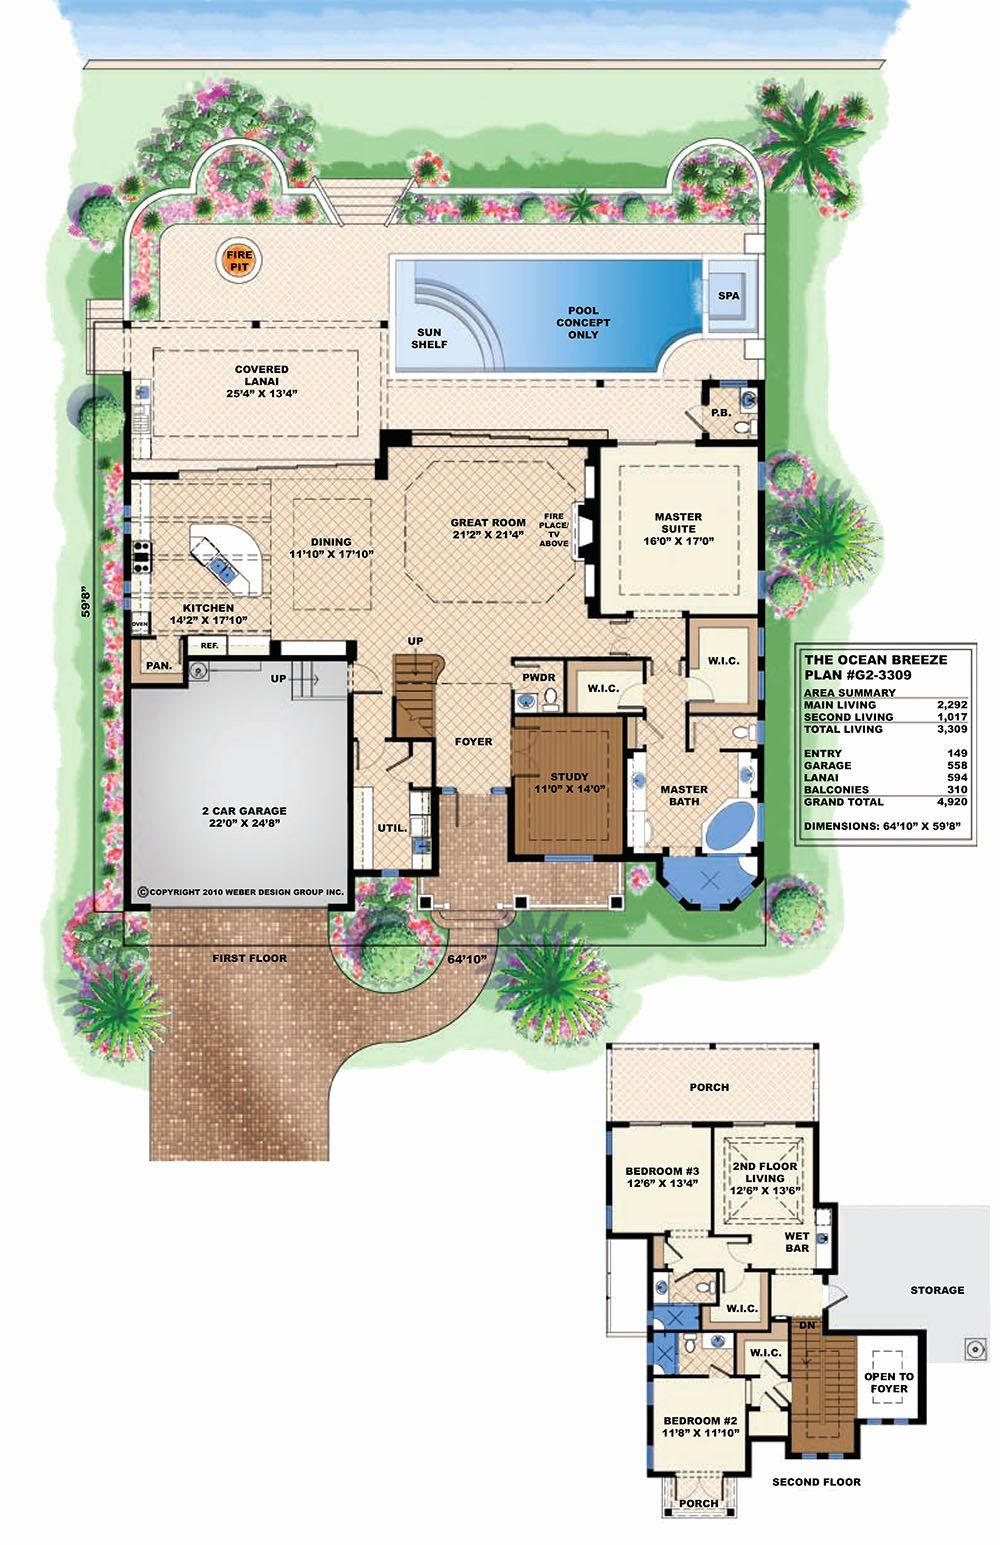 Old Florida Cracker House Plans New Olde Florida House Plans Old Florida Cracker Style Home In 2020 Florida House Plans House Floor Plans Beach House Plan